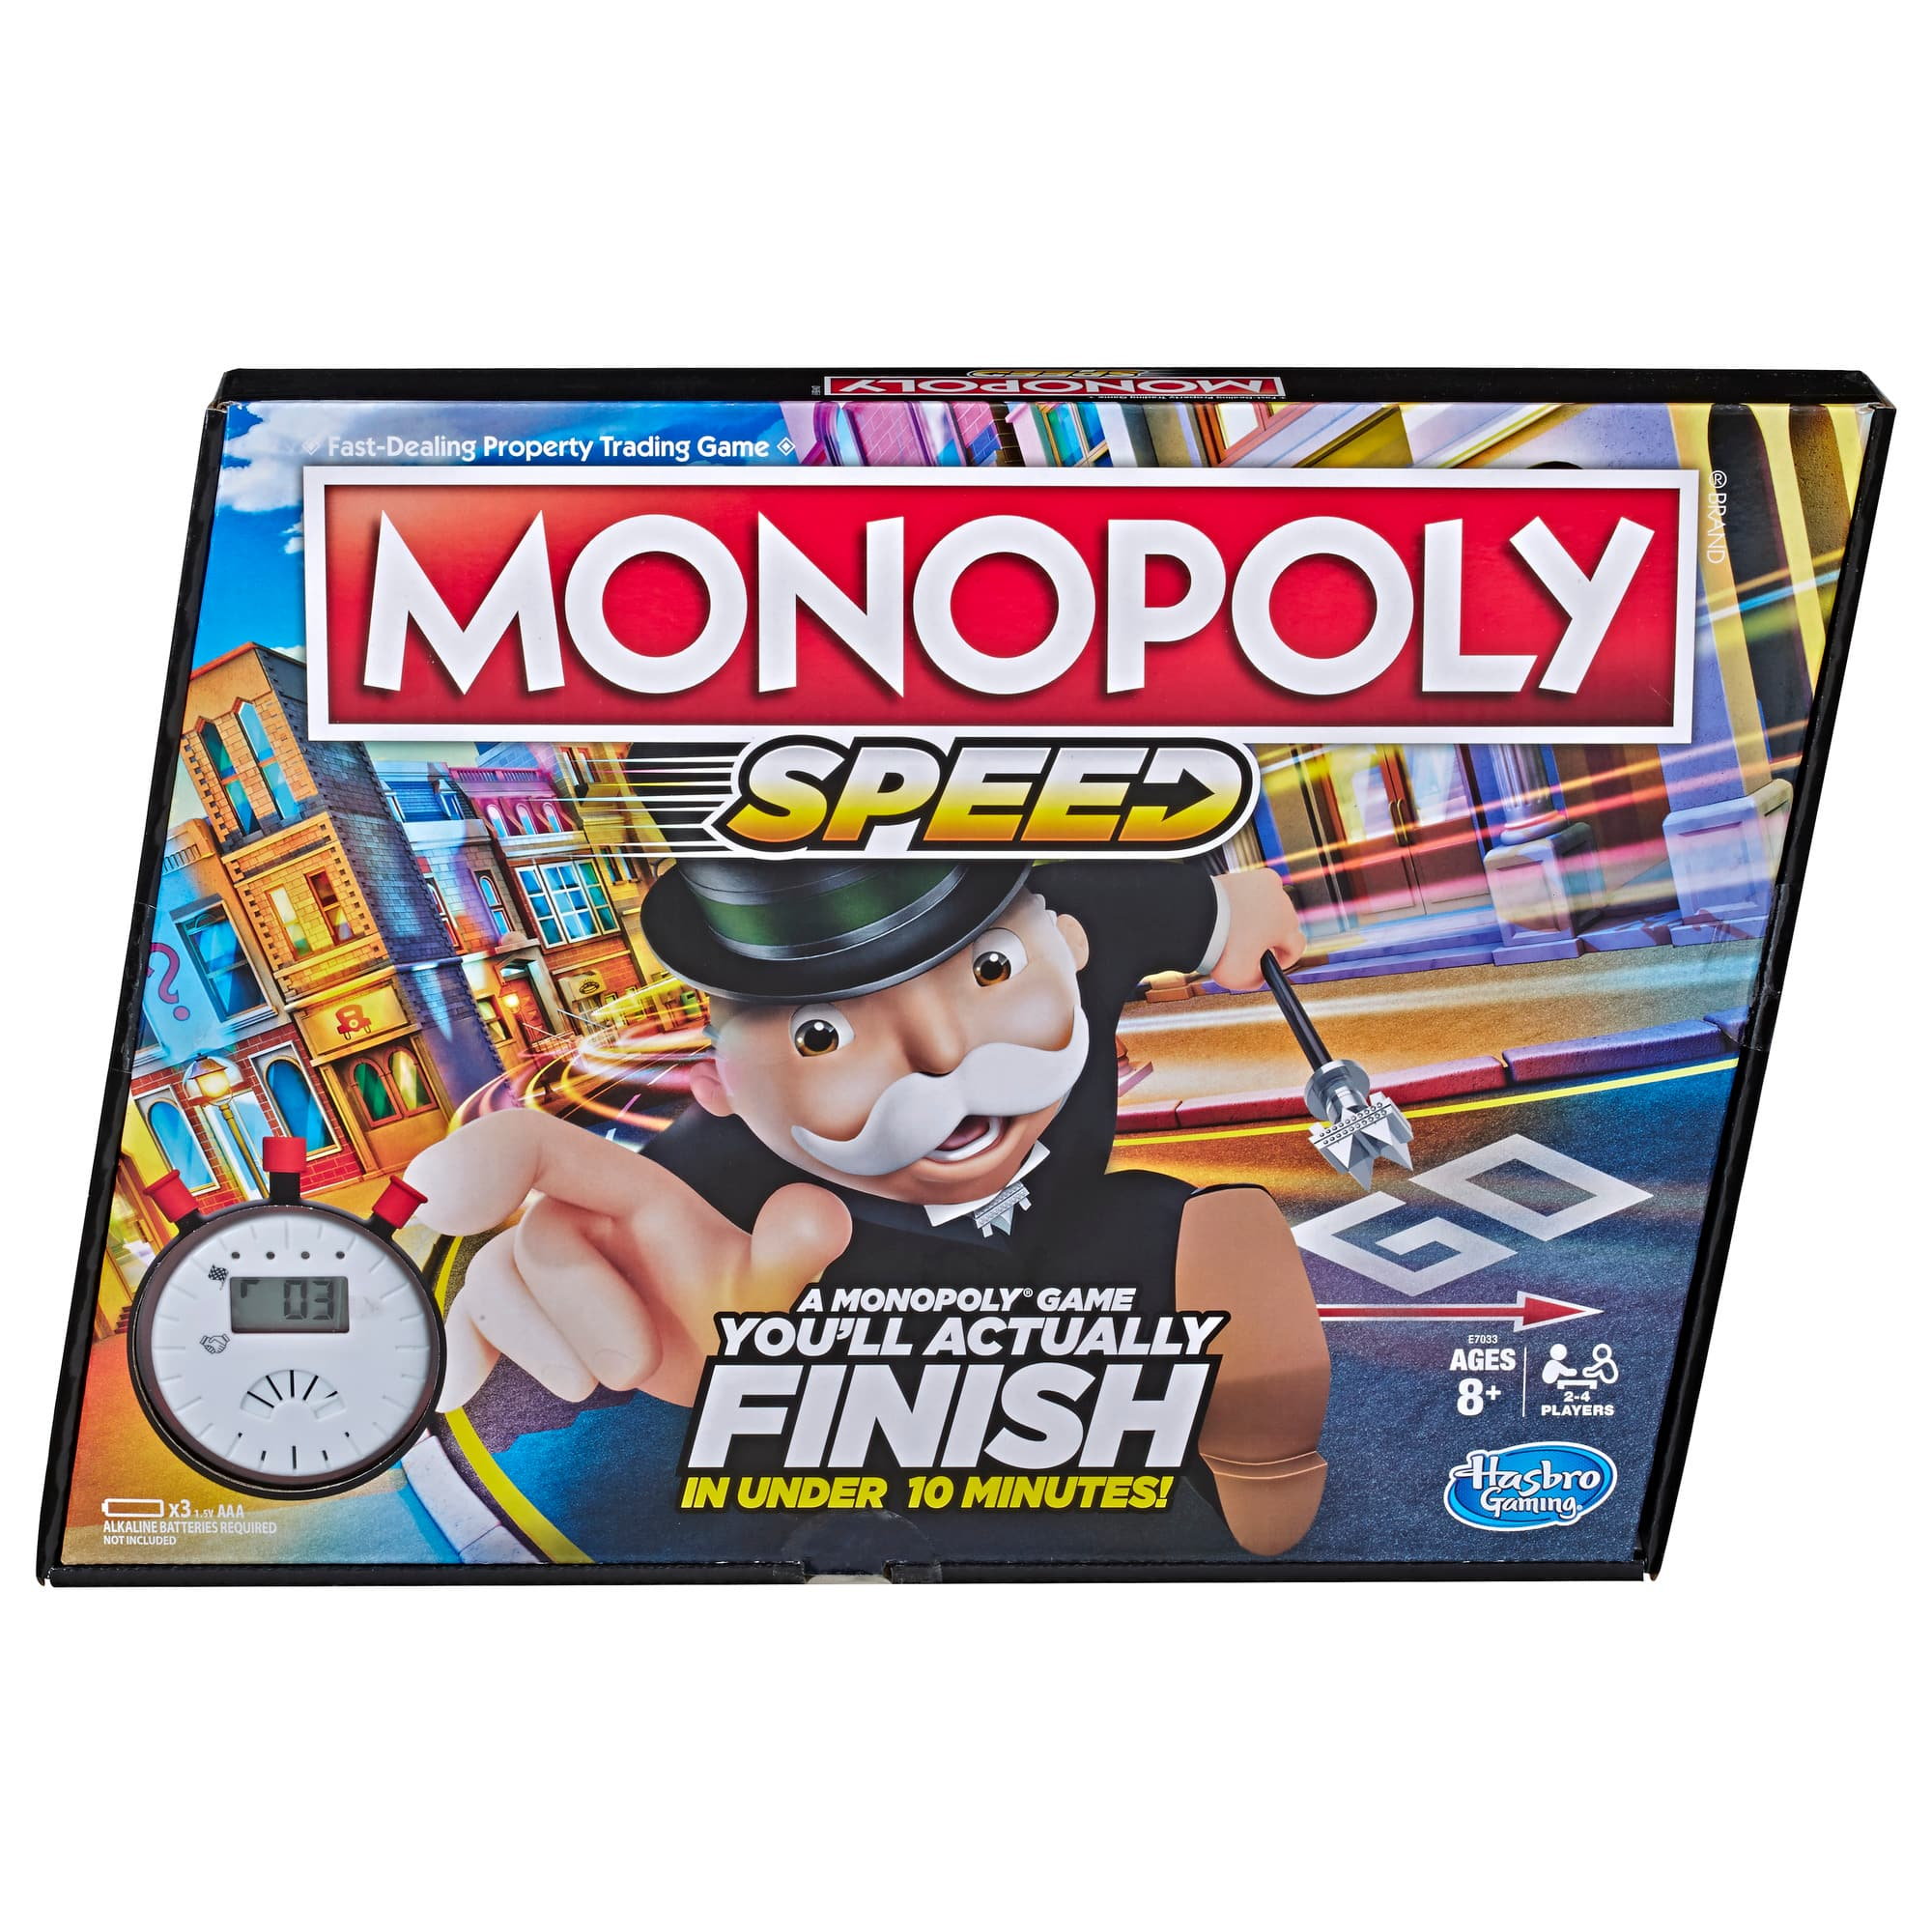 Monopoly Speed Board Game $10 + Free Shipping w/ Amazon Prime or Orders $25+